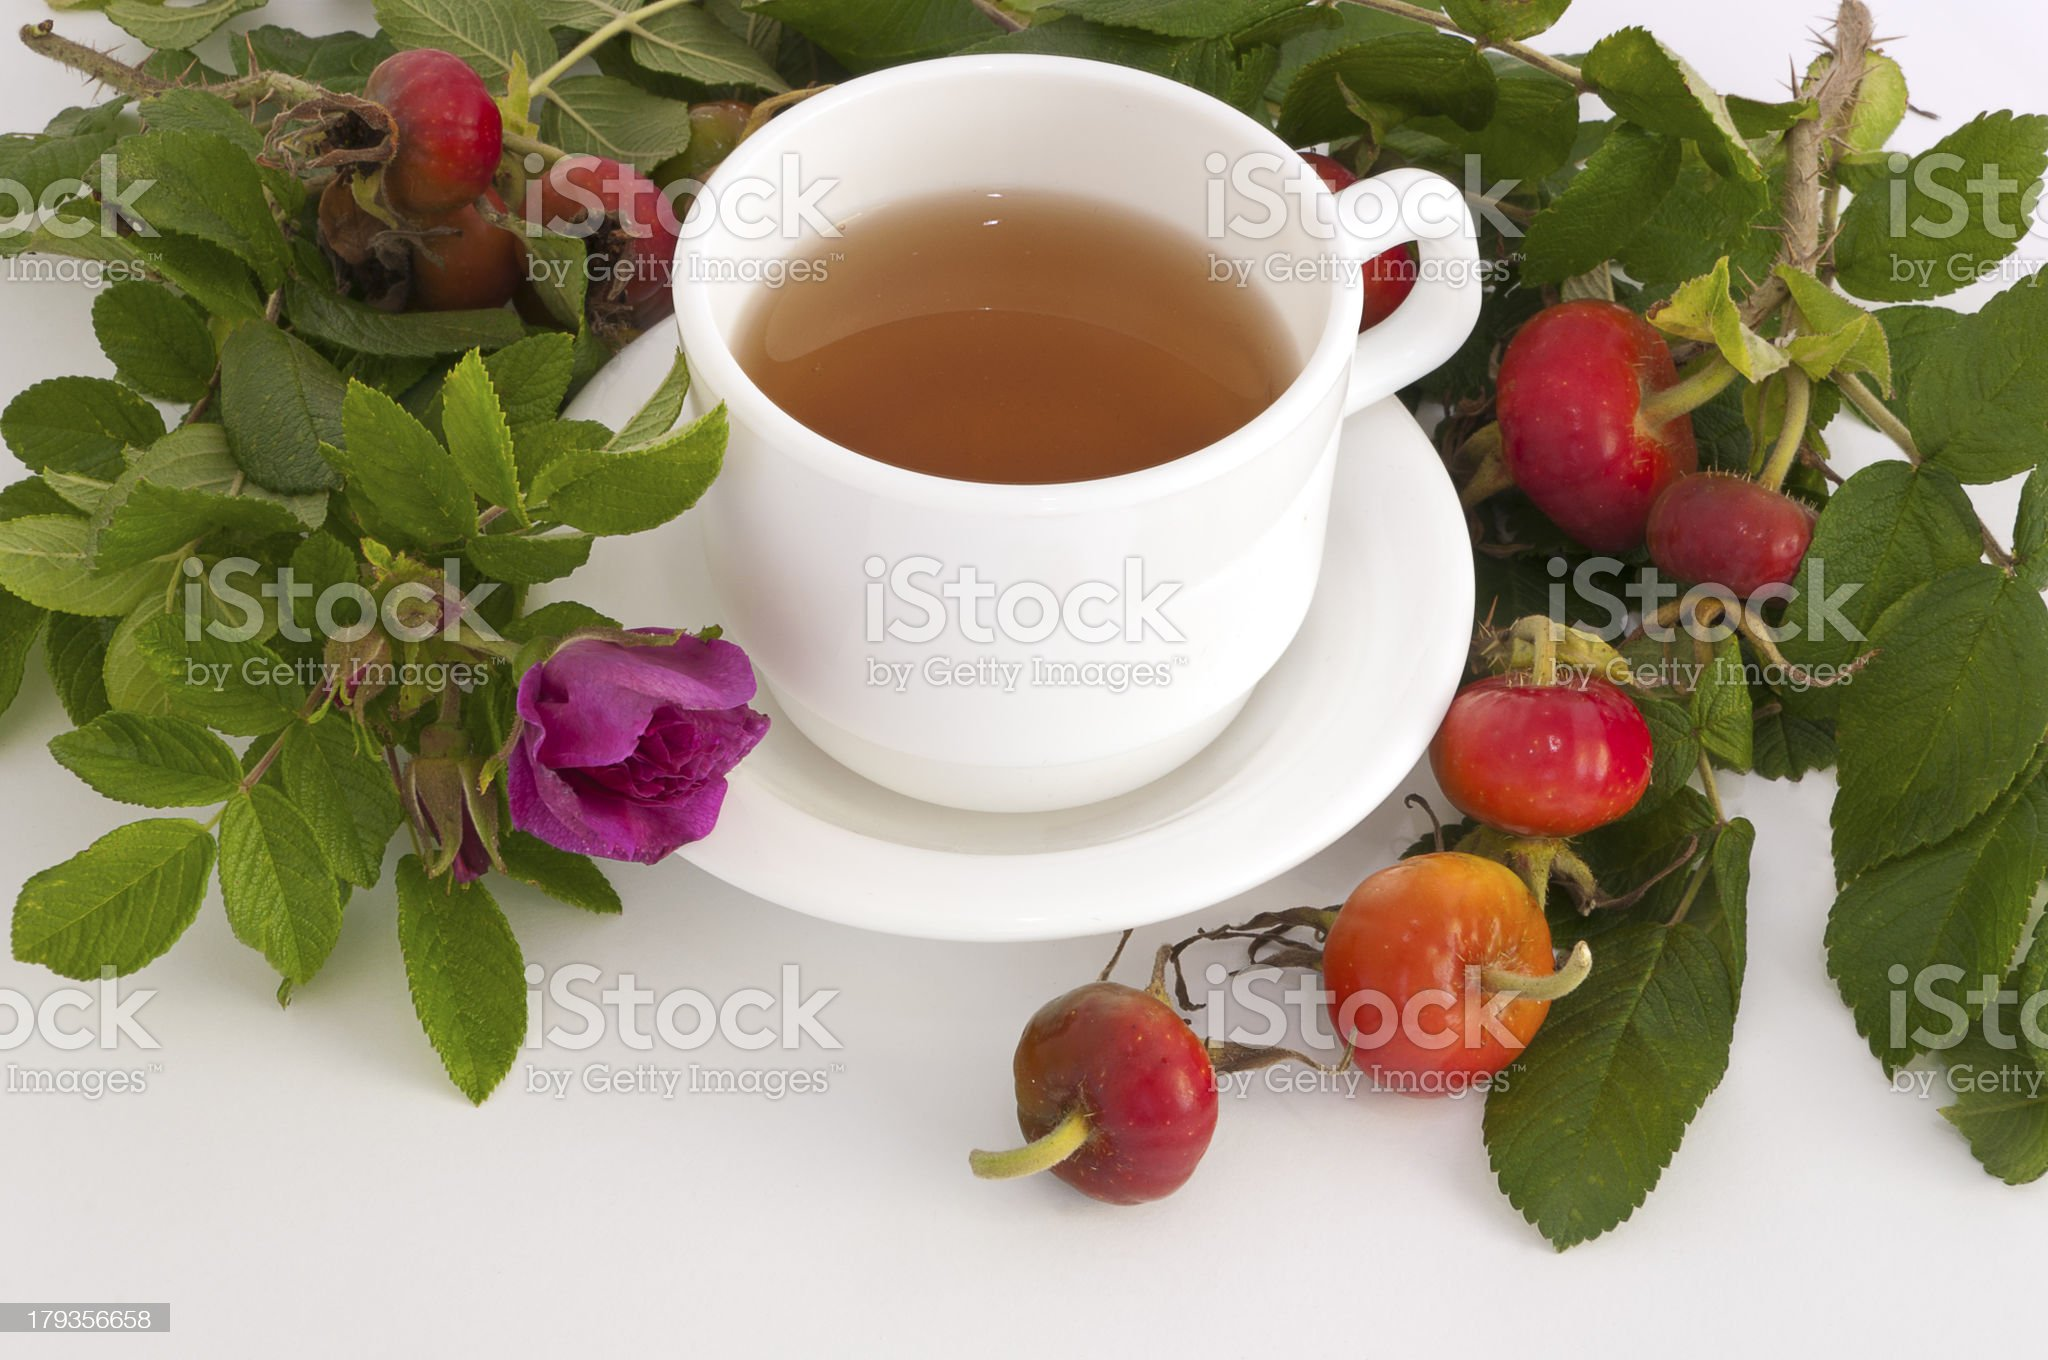 tea from rose hips royalty-free stock photo